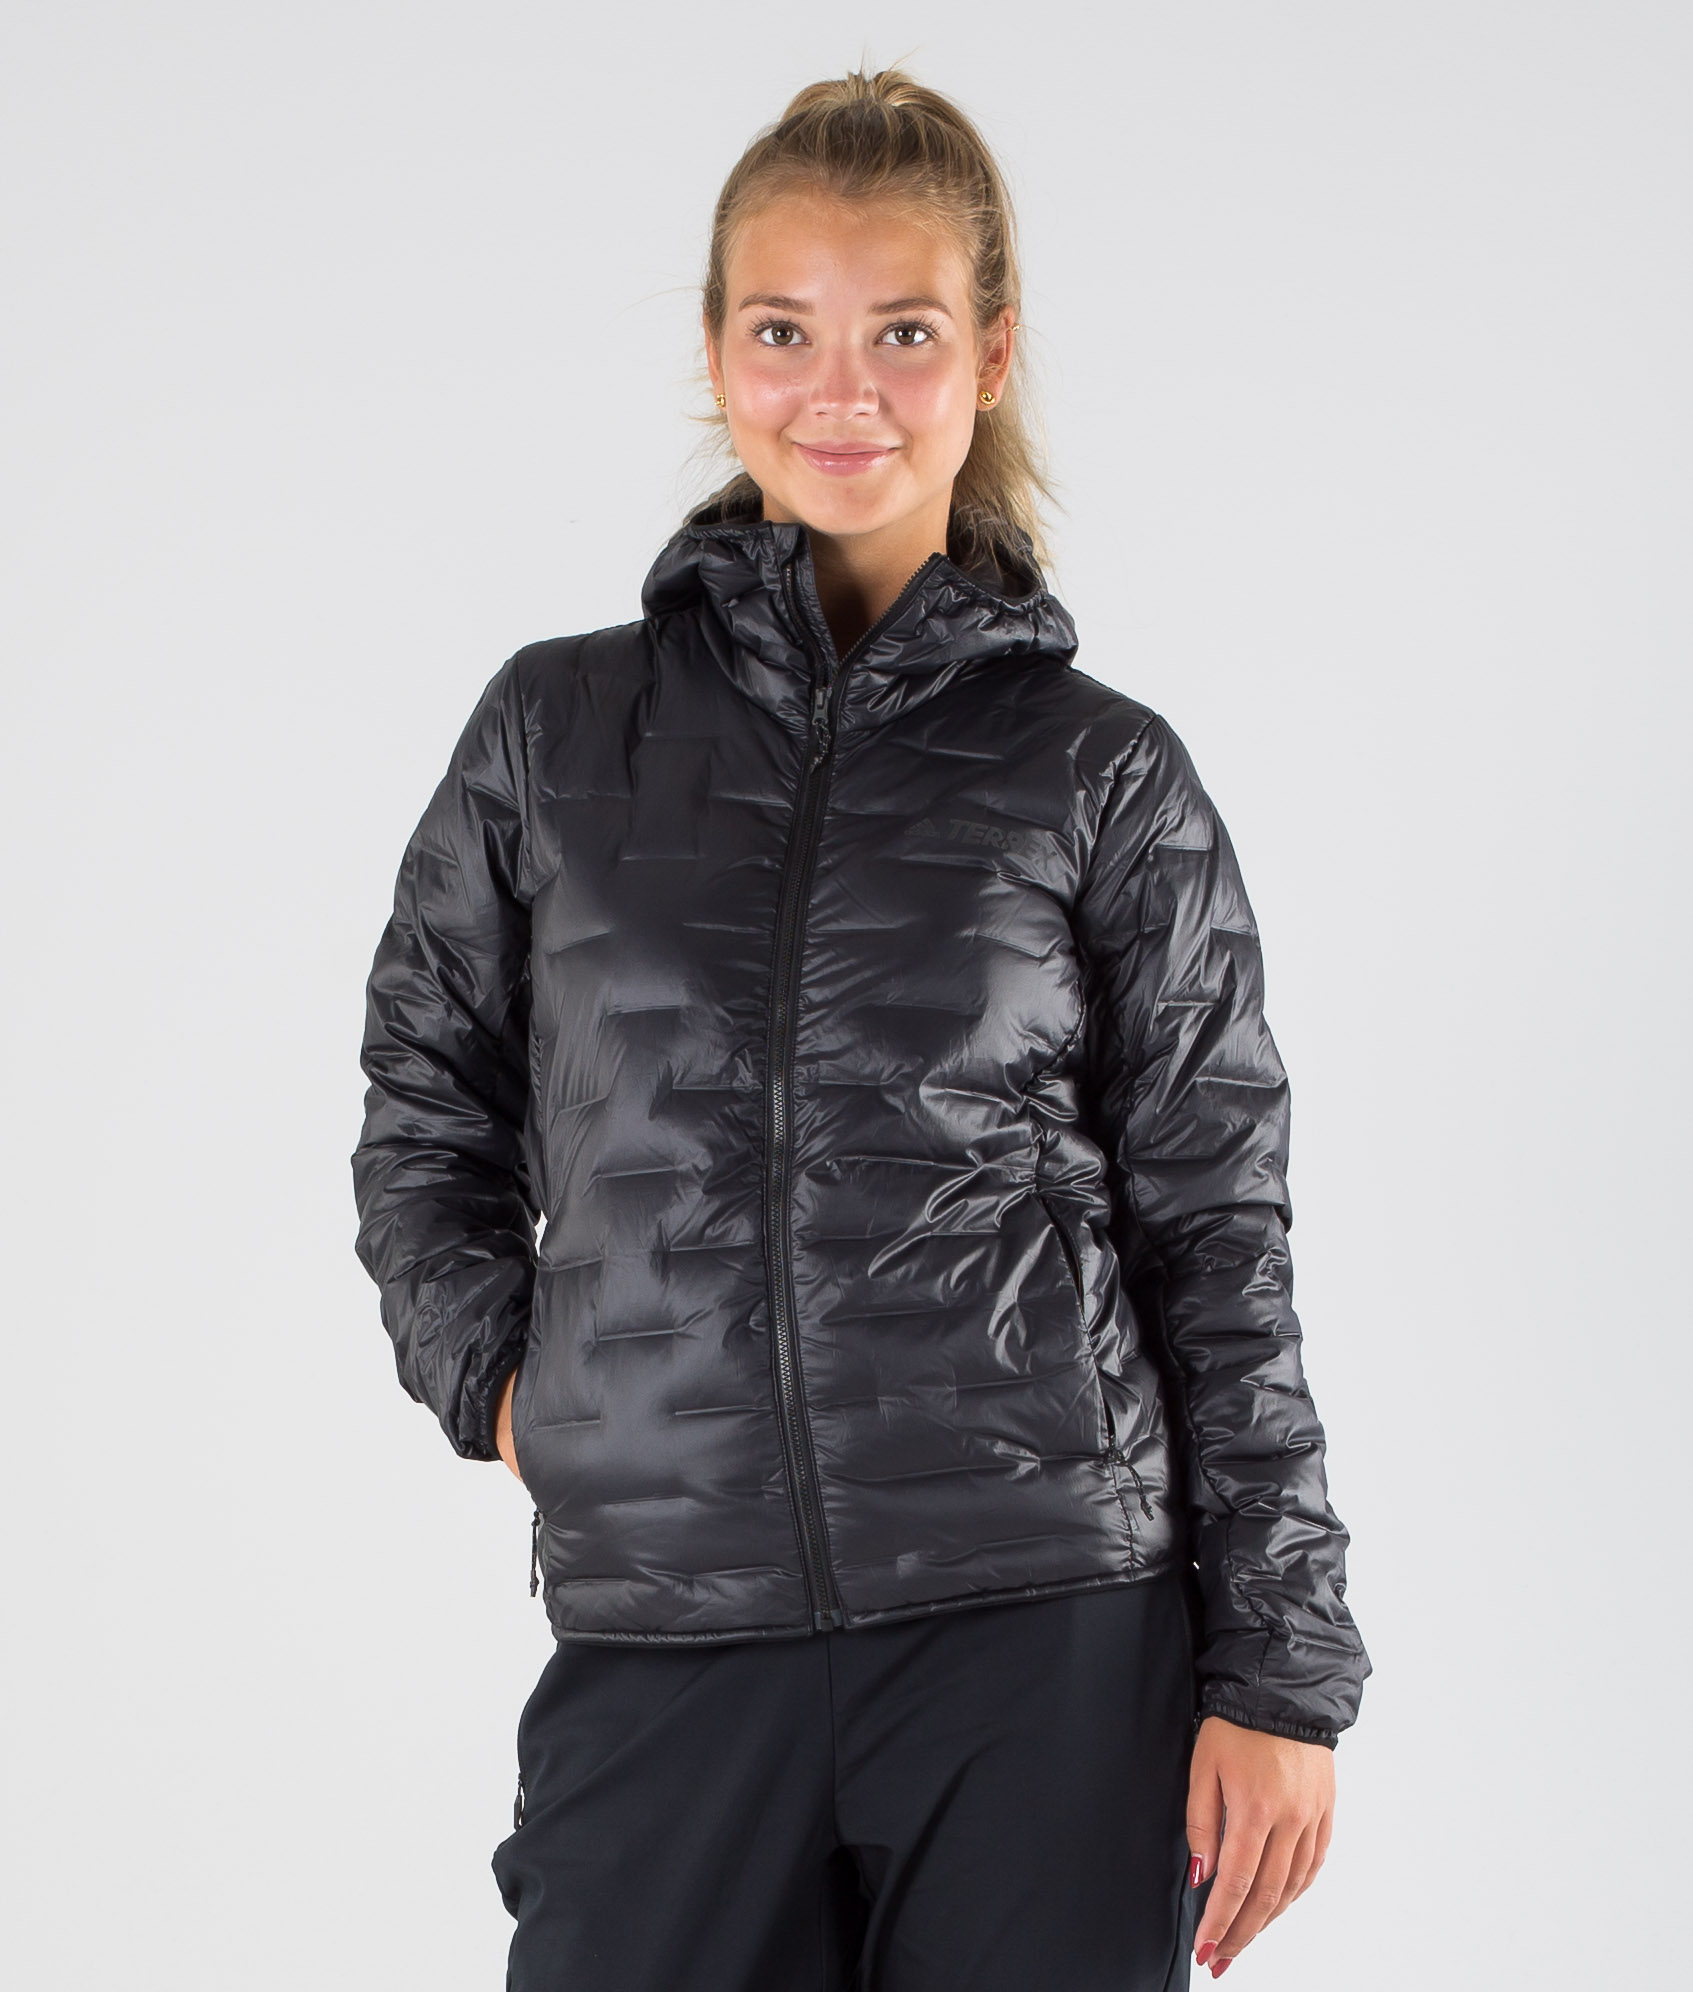 adidas Terrex W Light Down Damen Outdoorjacke Jacken